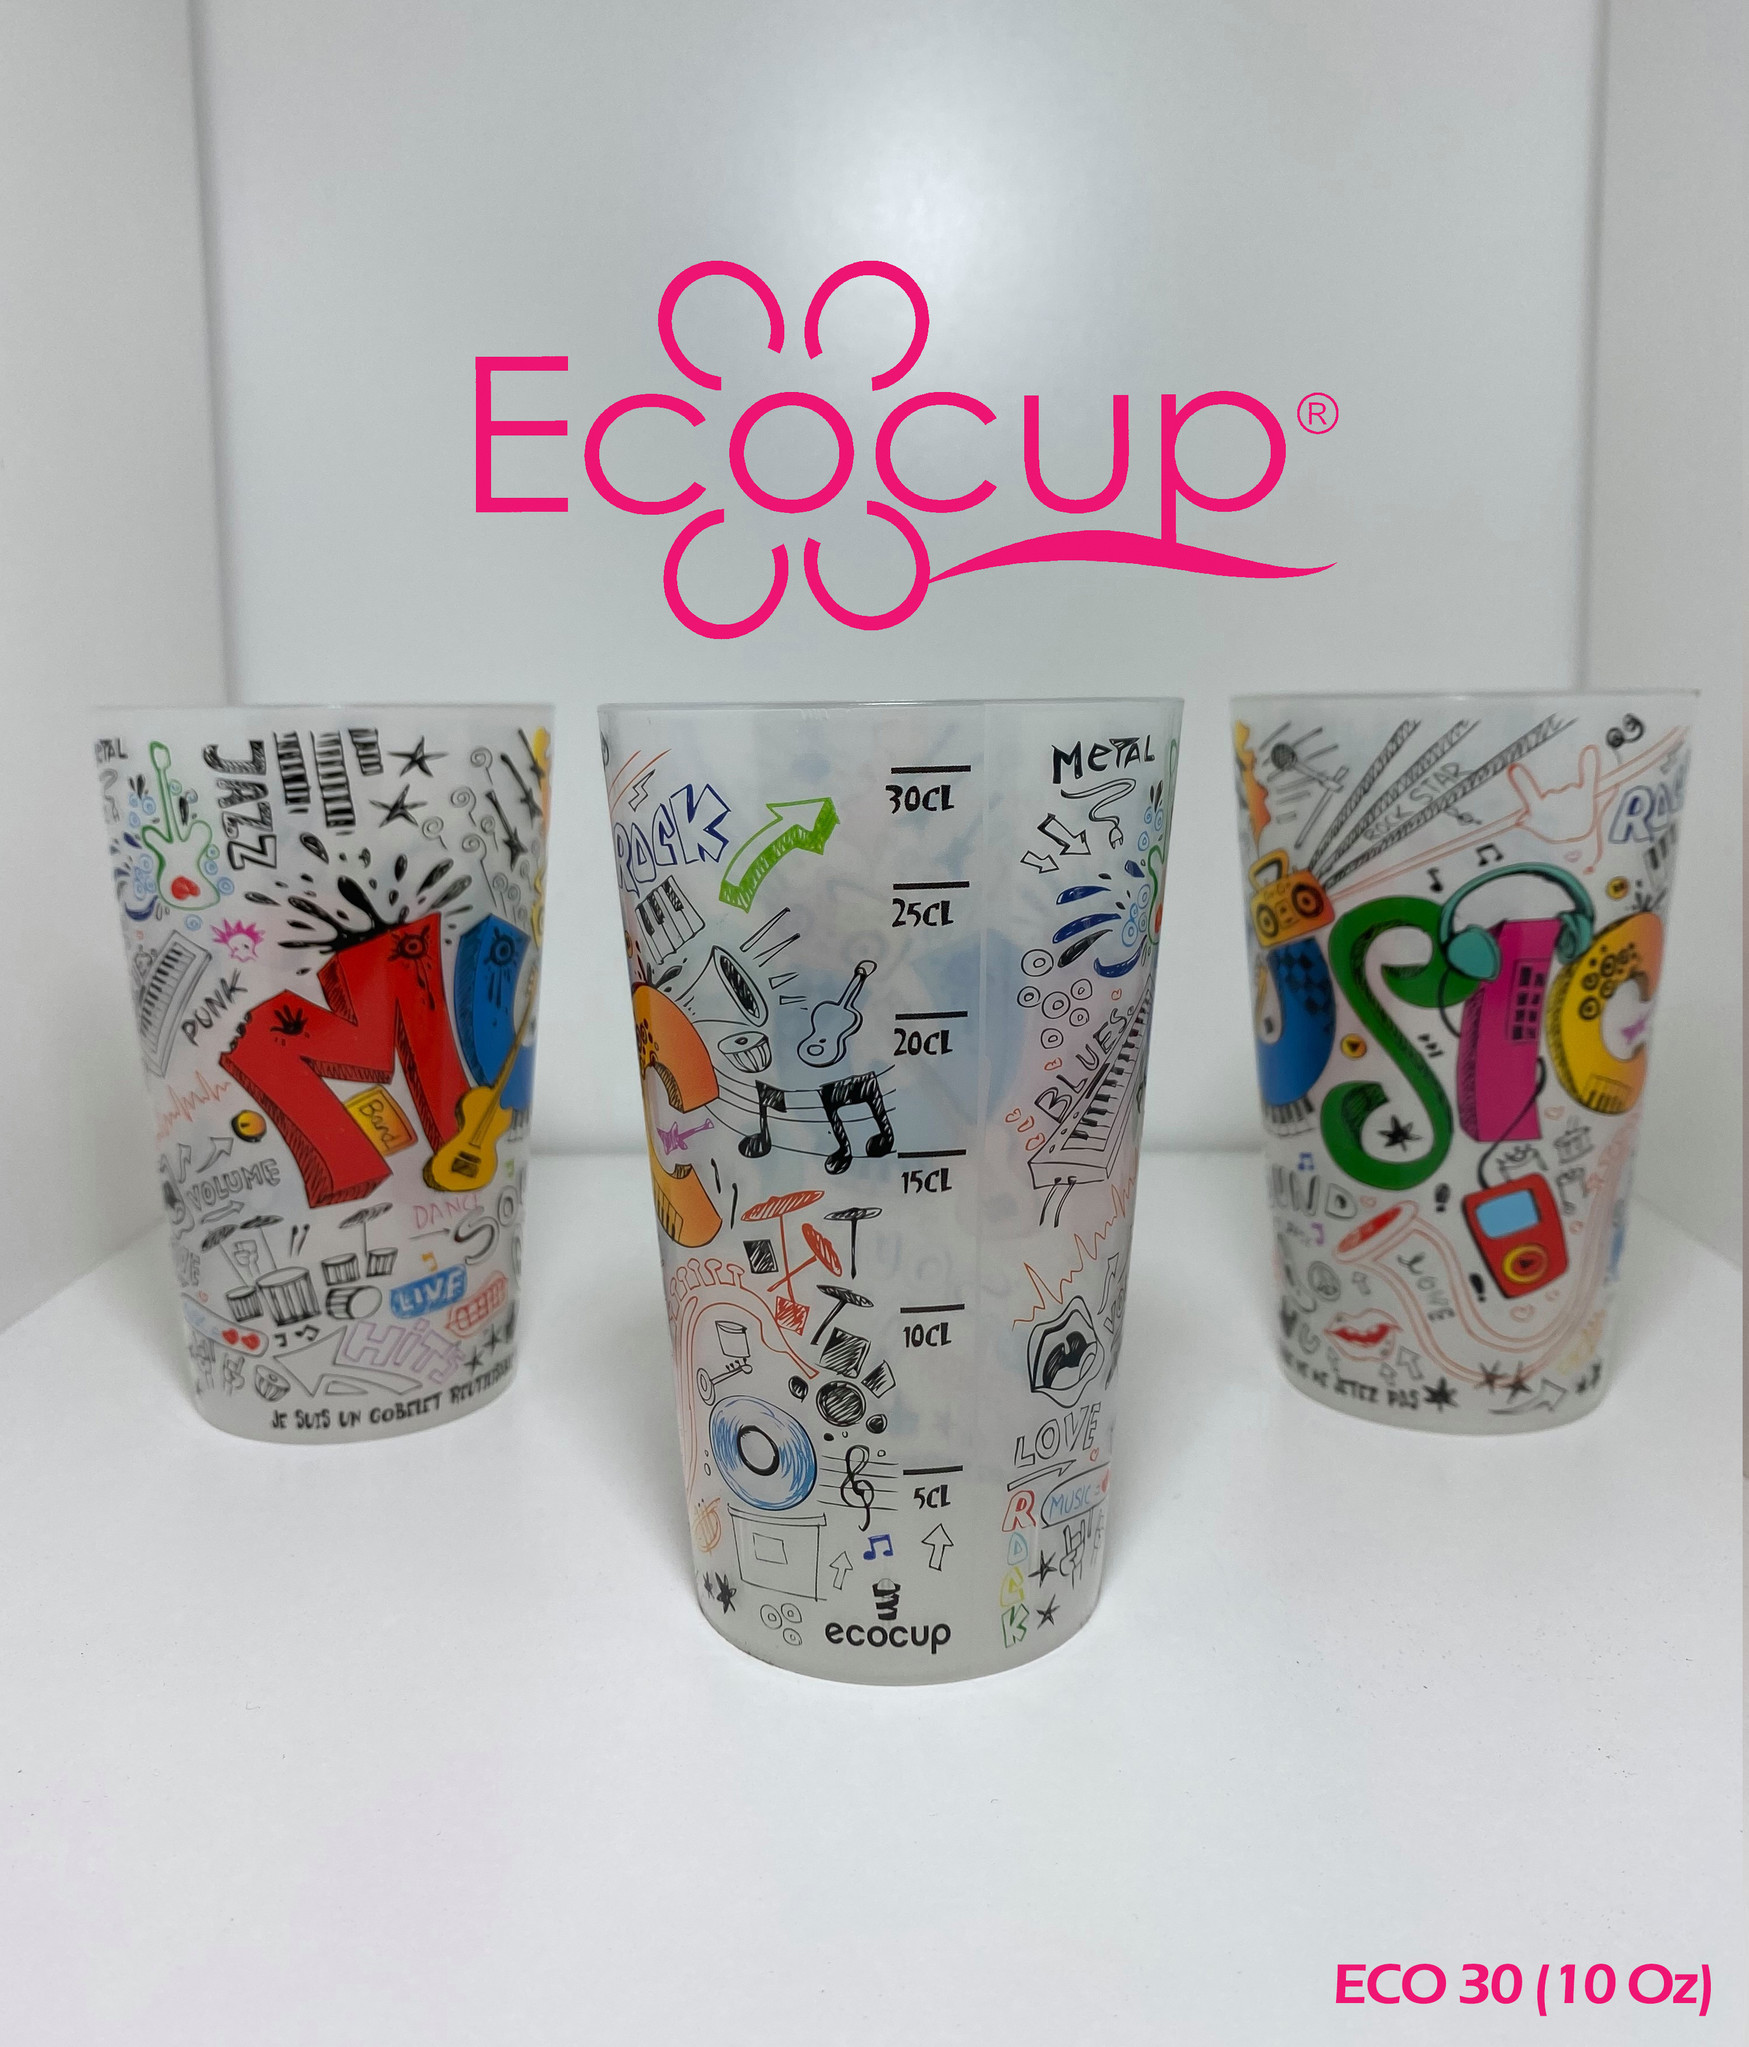 Eco30 (10oz) 500/Carton LAVAGE INCLUS